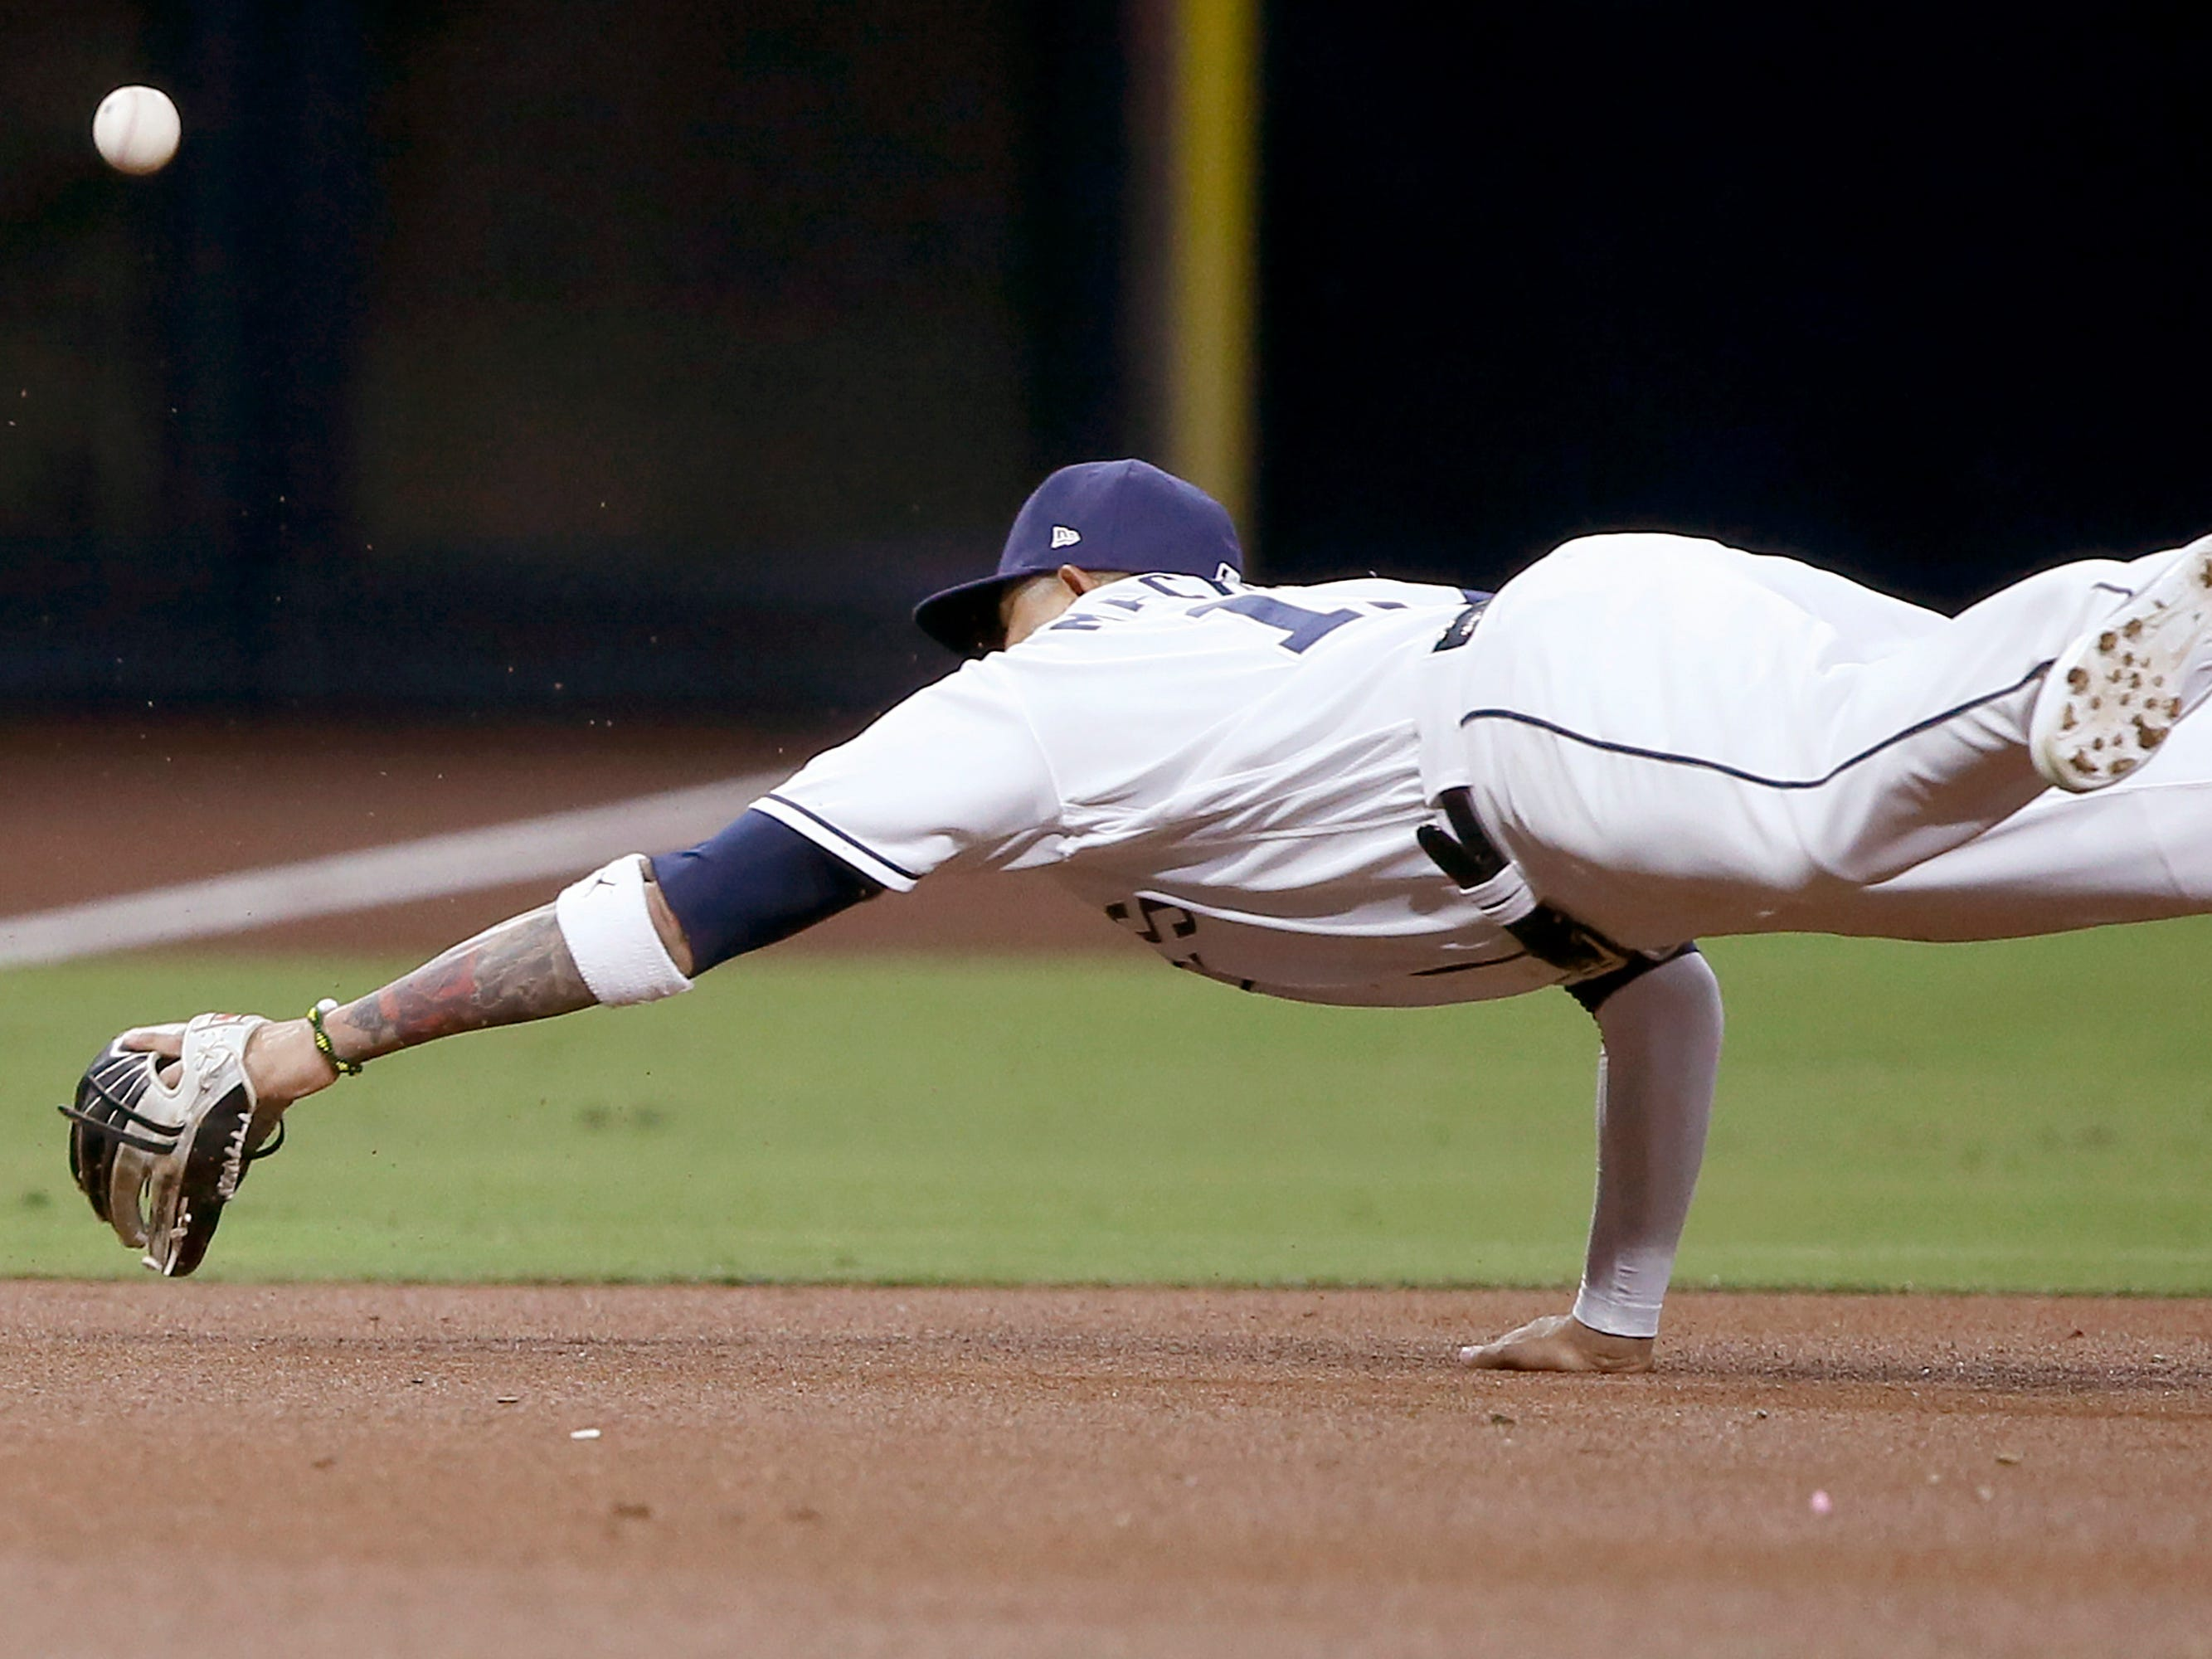 San Diego Padres third baseman Manny Machado dives for but cannot catch a single by Arizona Diamondbacks' Eduardo Escobar during the first inning of a baseball game in San Diego, Monday, April 1, 2019.